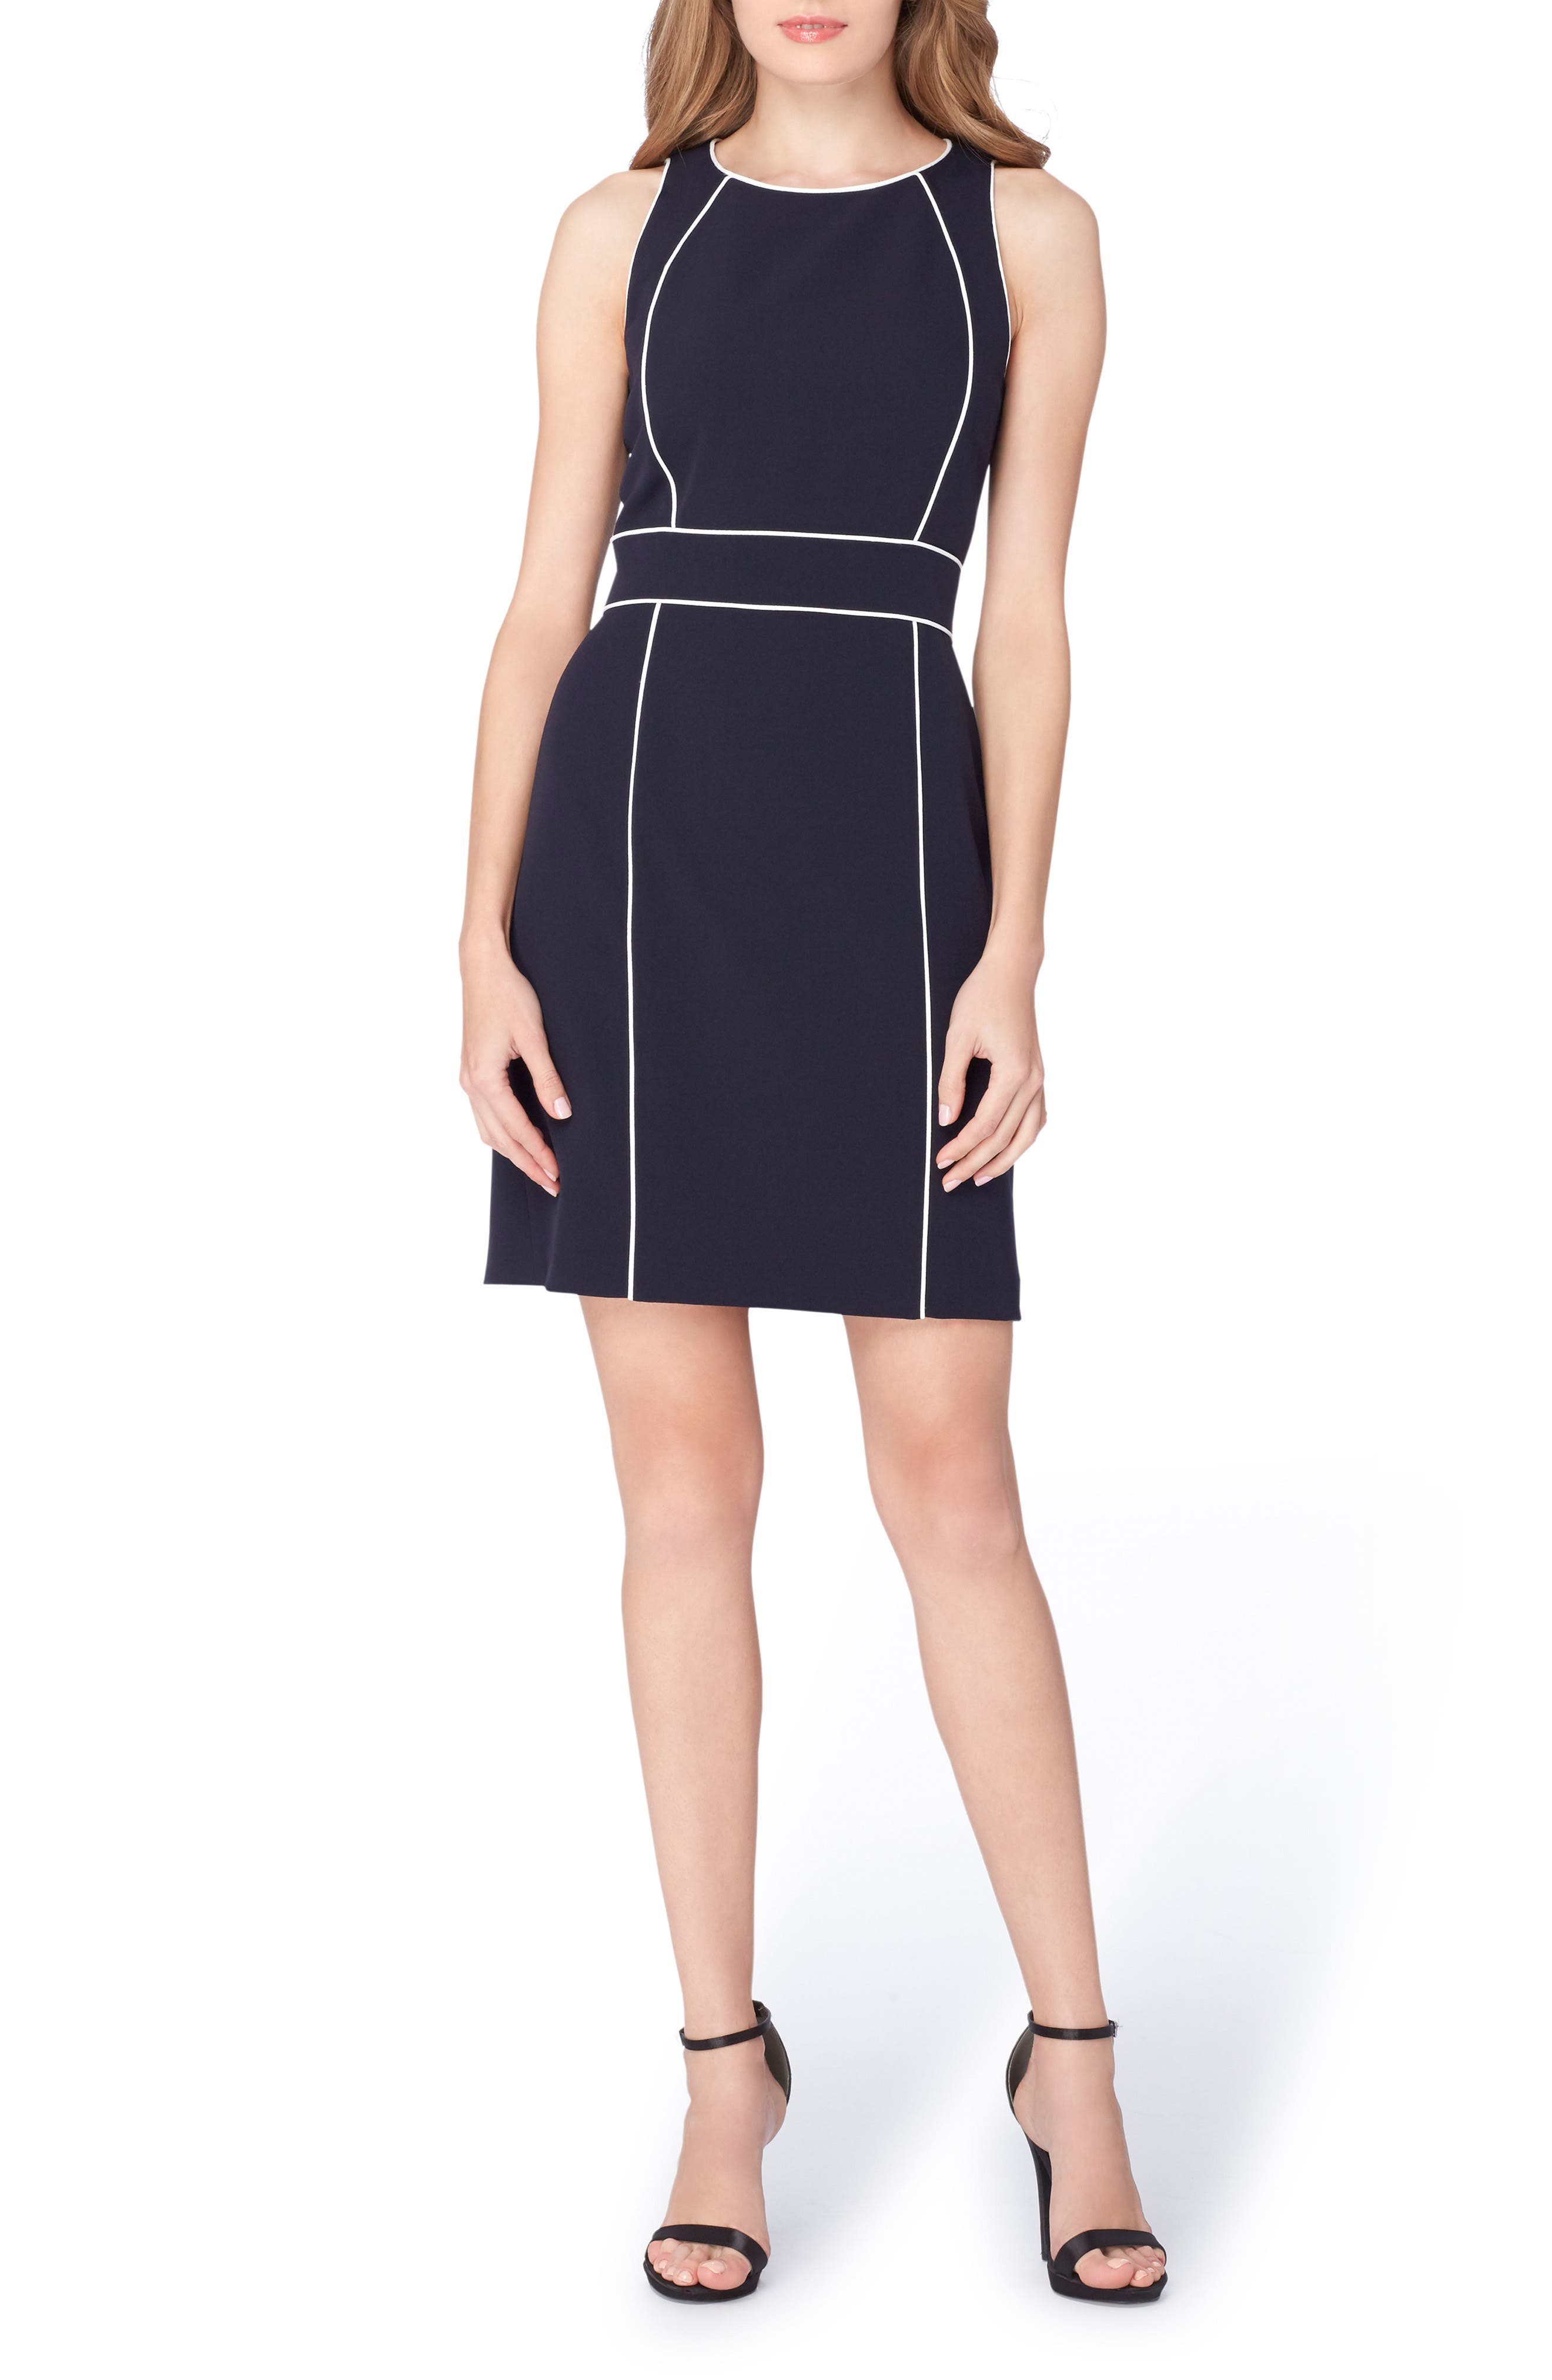 Alternate Image 1 Selected - Tahari Colorblock Sheath Dress (Regular & Petite)